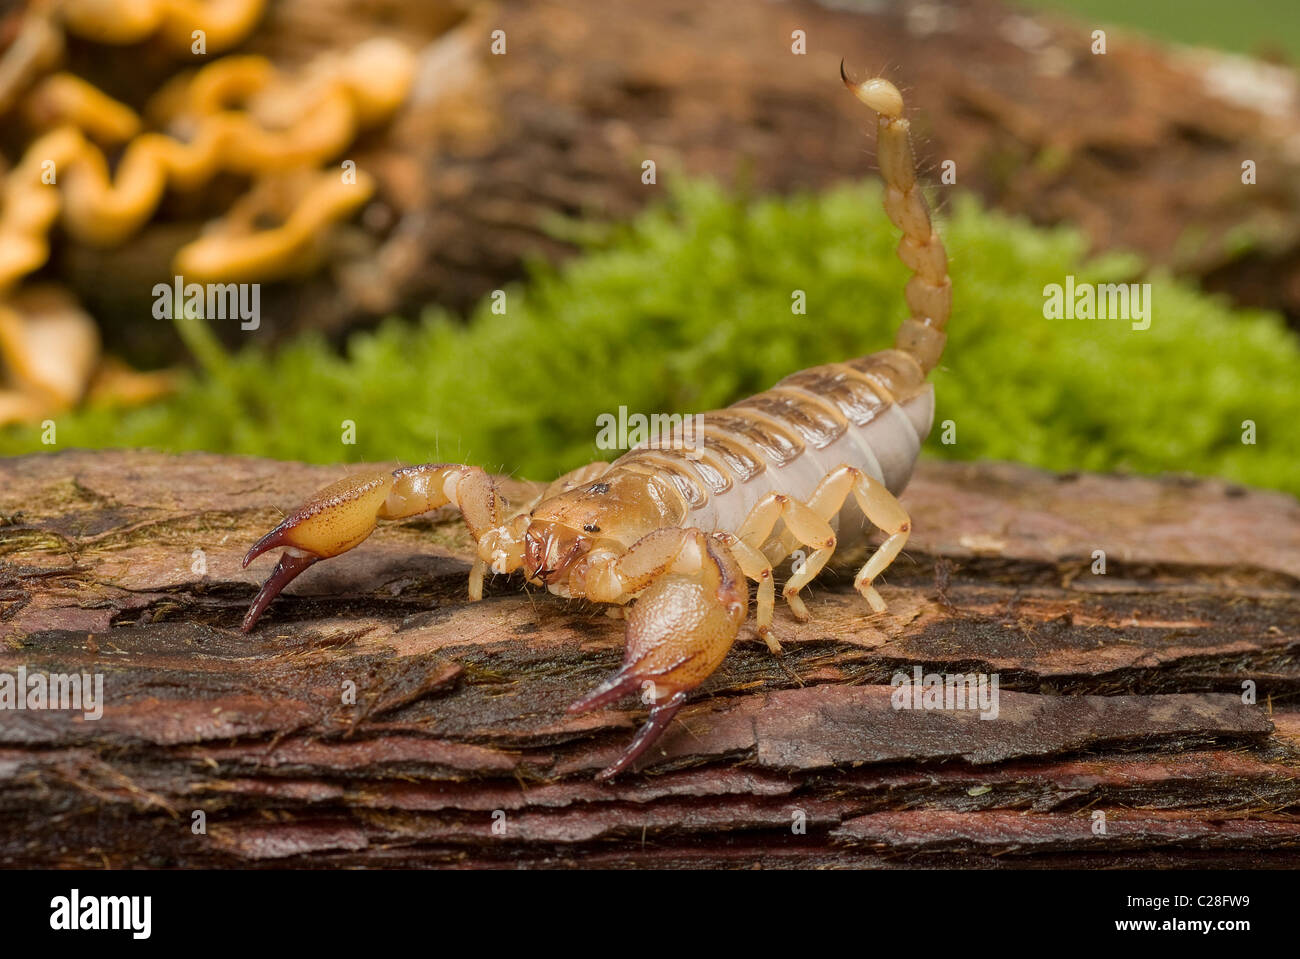 Burrowing Scorpion (Opistophthalmus boehmi) on wood. - Stock Image